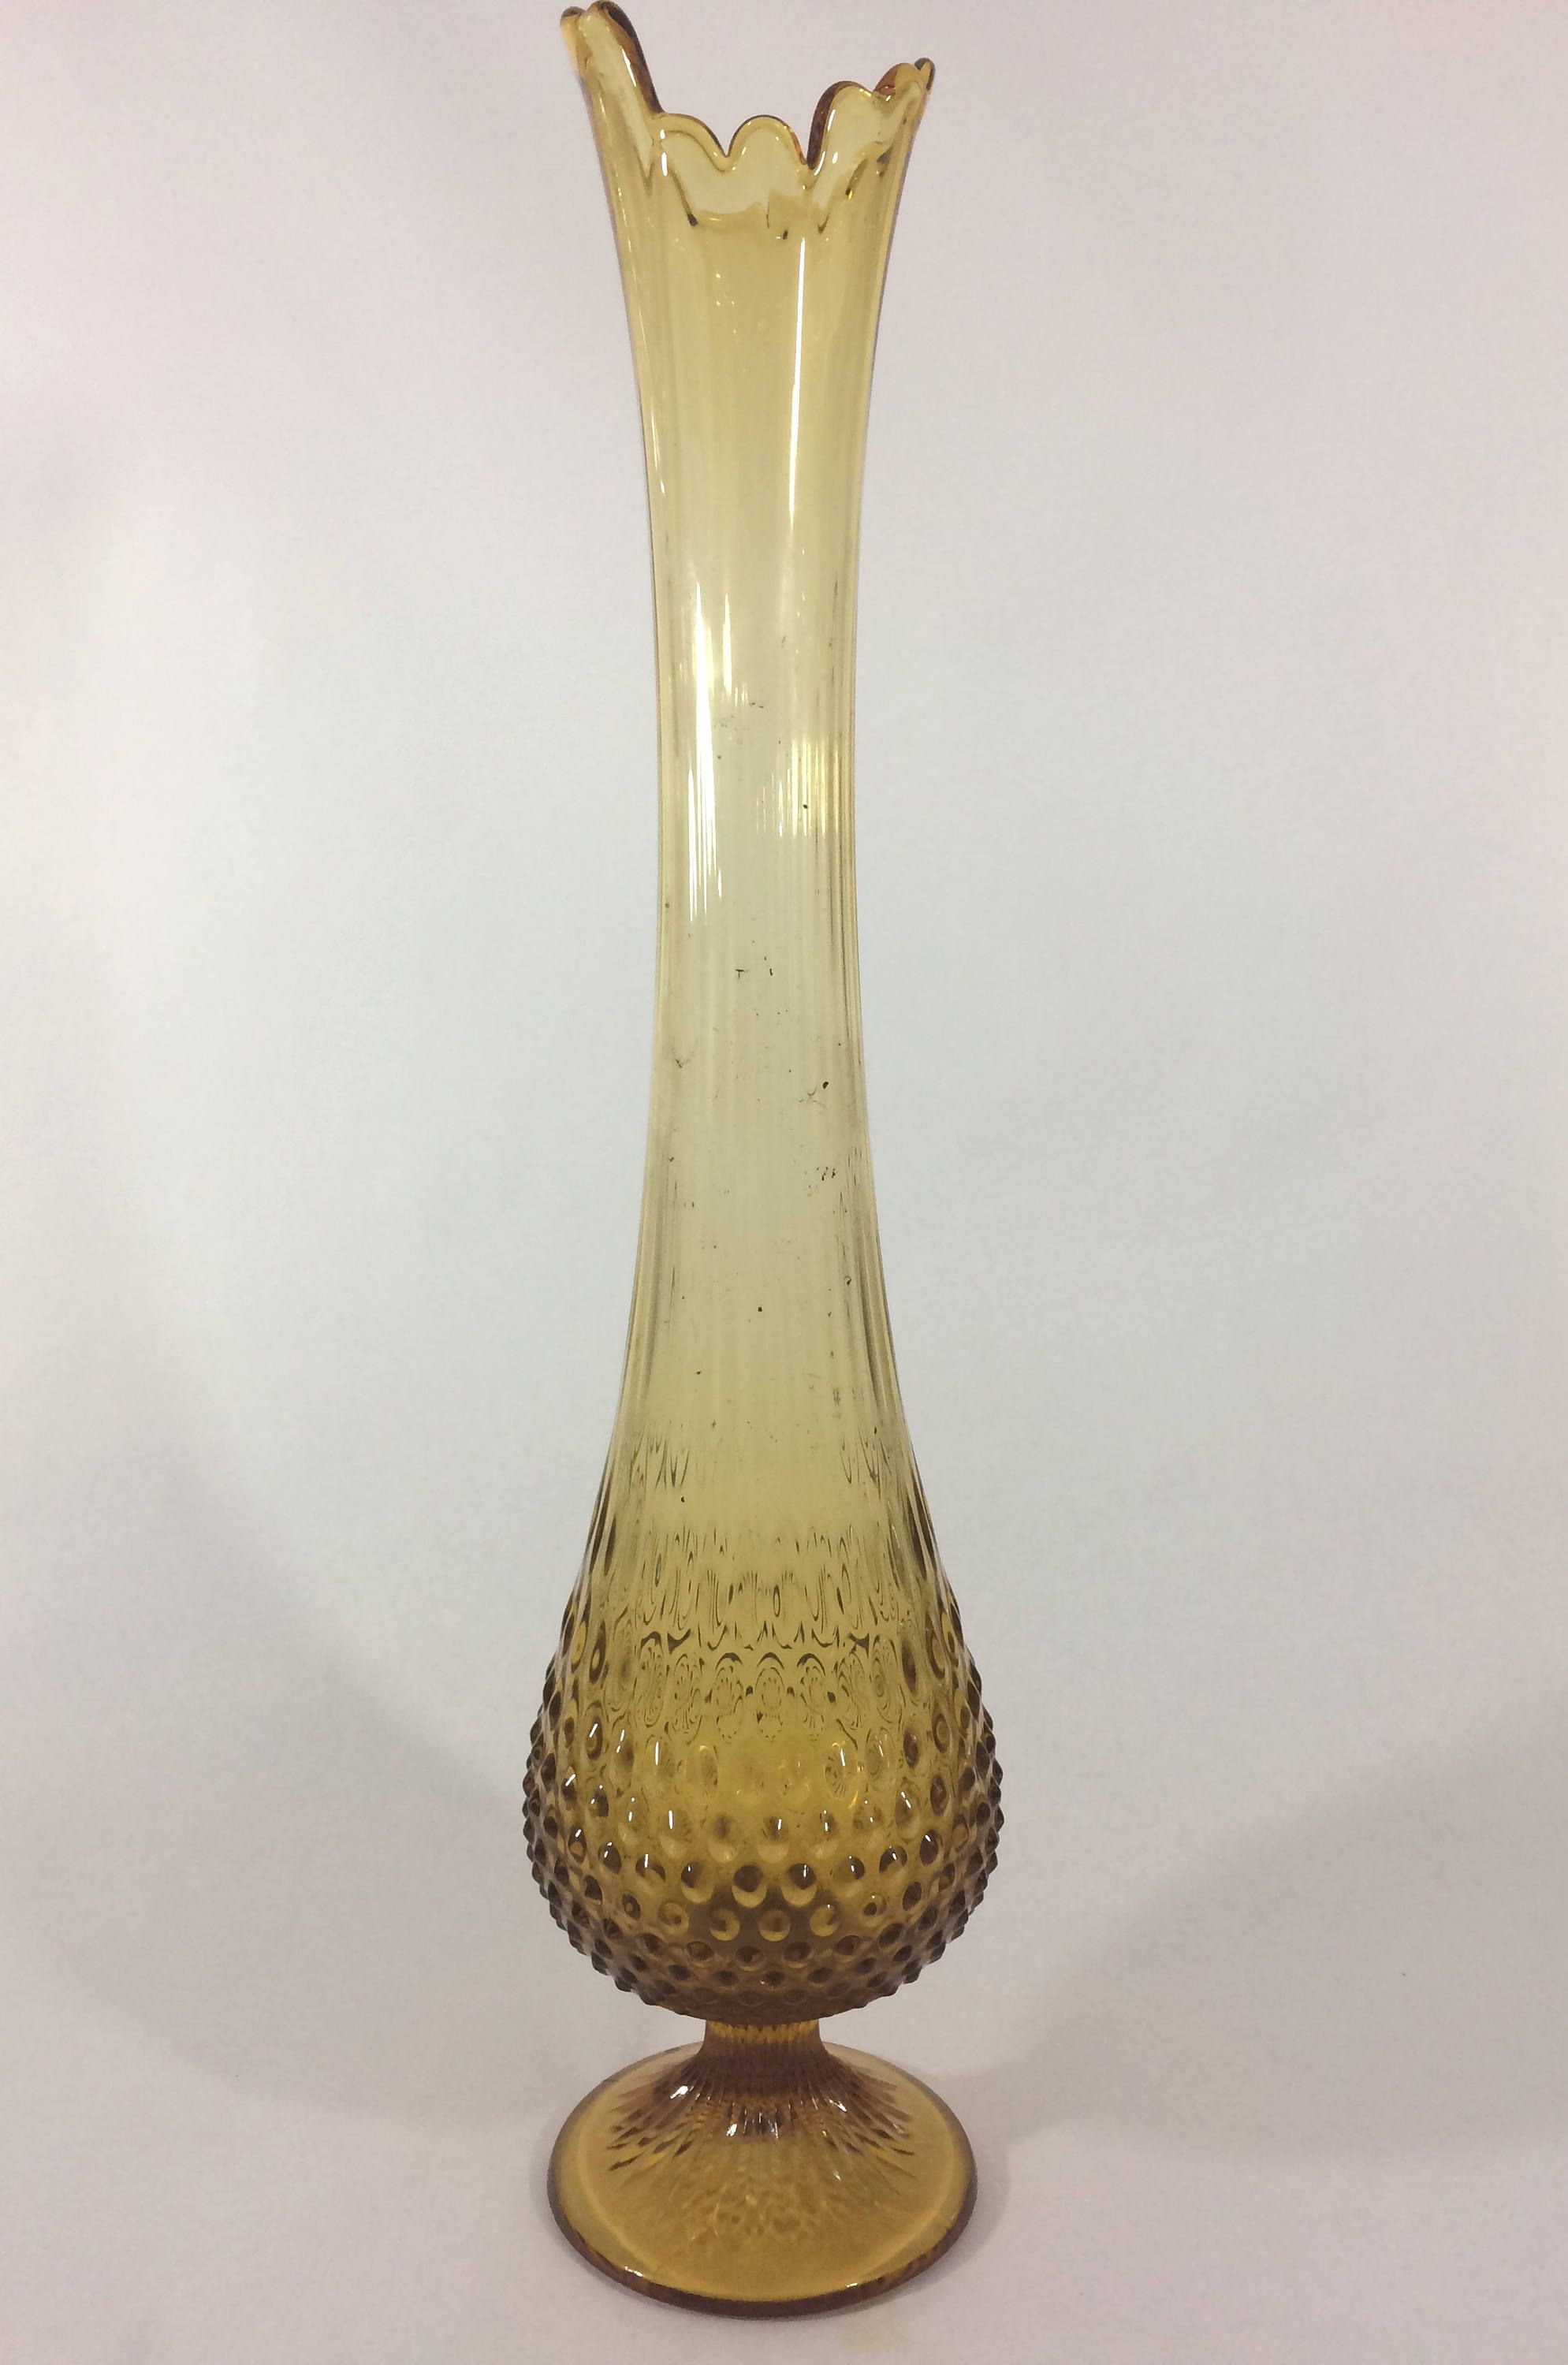 fenton amber hobnail vase of fenton amber glass vase hobnail swung mid century 19 tall retro regarding fenton glass large 19 amber hobnail viking footed swung vase mid century art glass vintage fenton amber topaz glass vase by lakesidevintageshop on etsy